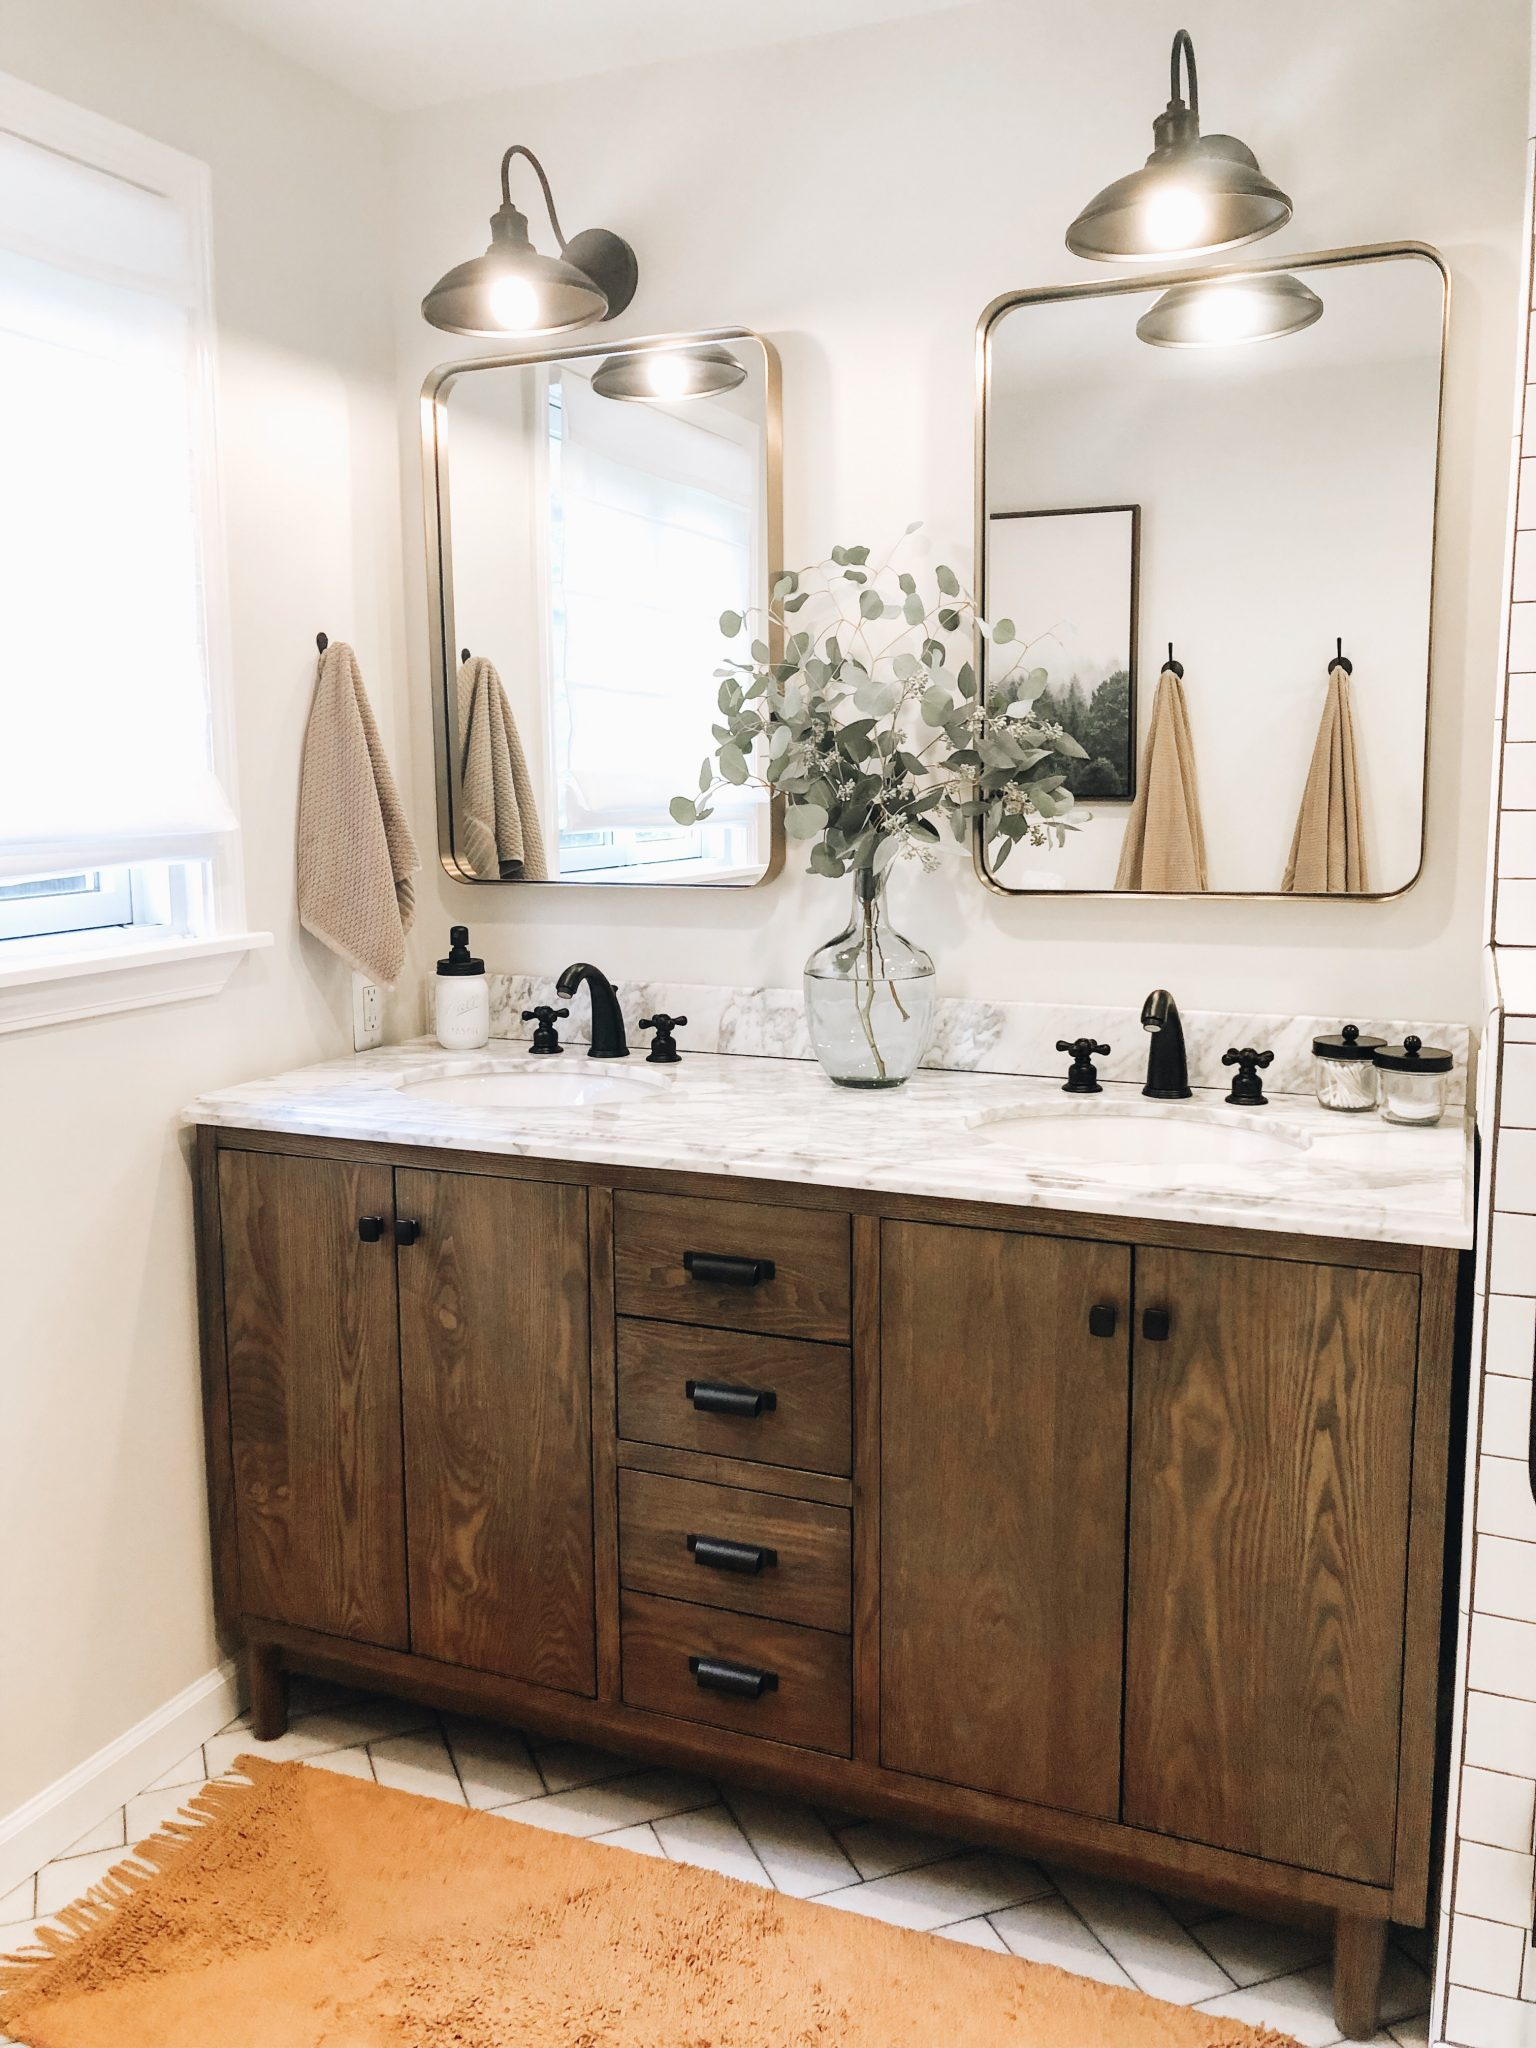 Master Bathroom Reveal | Daily Splendor Life and Style Blog | master bathroom #modernfarmhouse #modernfarmhousebathroom #Fixerupperstyle #contemporarybathroom #marbletile #subwaytile #subwaytileshower #herringbonetilefloor #matteblackbathroomfixtures #bathroomvanity #woodvanity